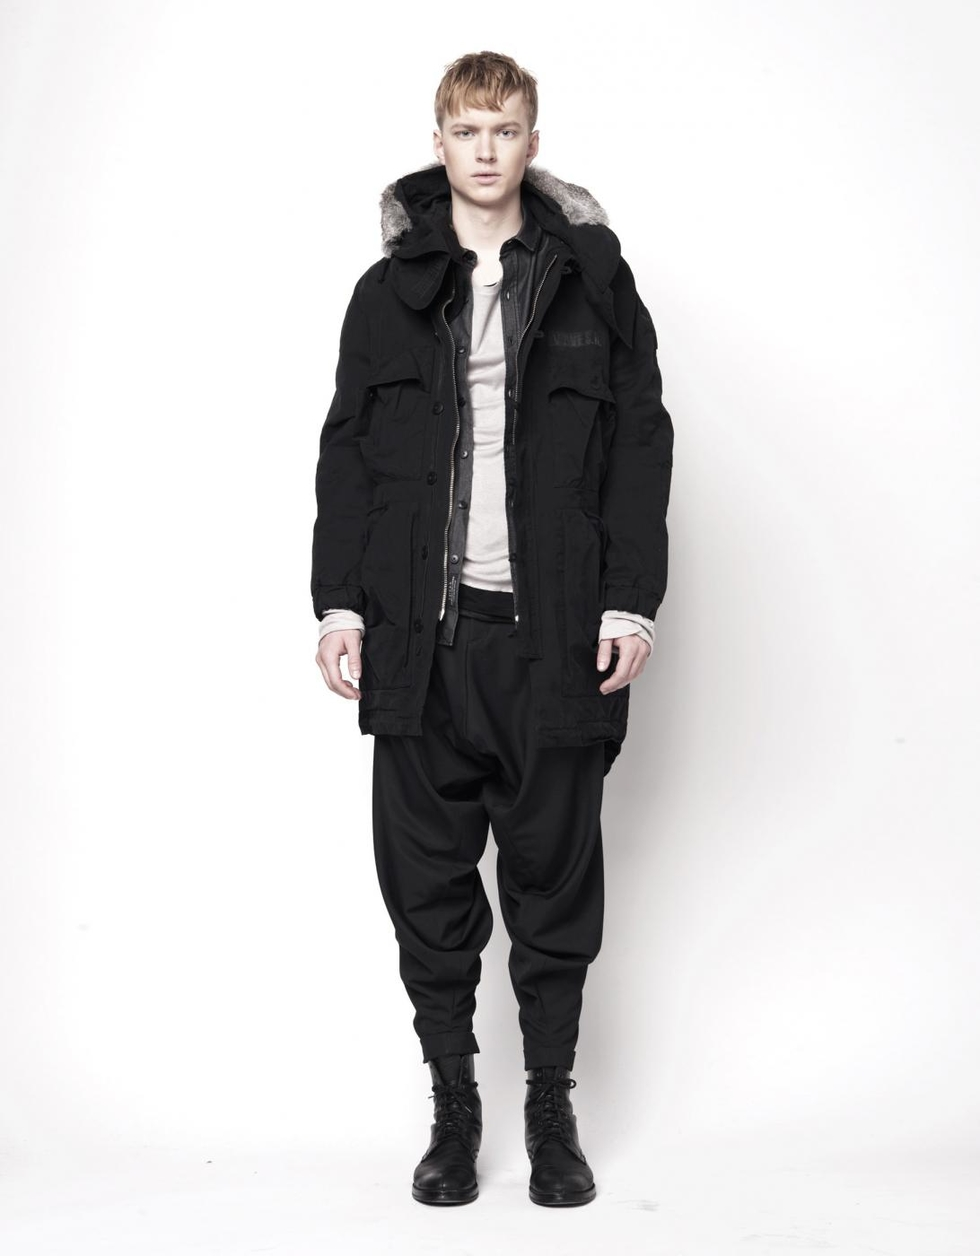 aw11_man_foldpocketparka_black1